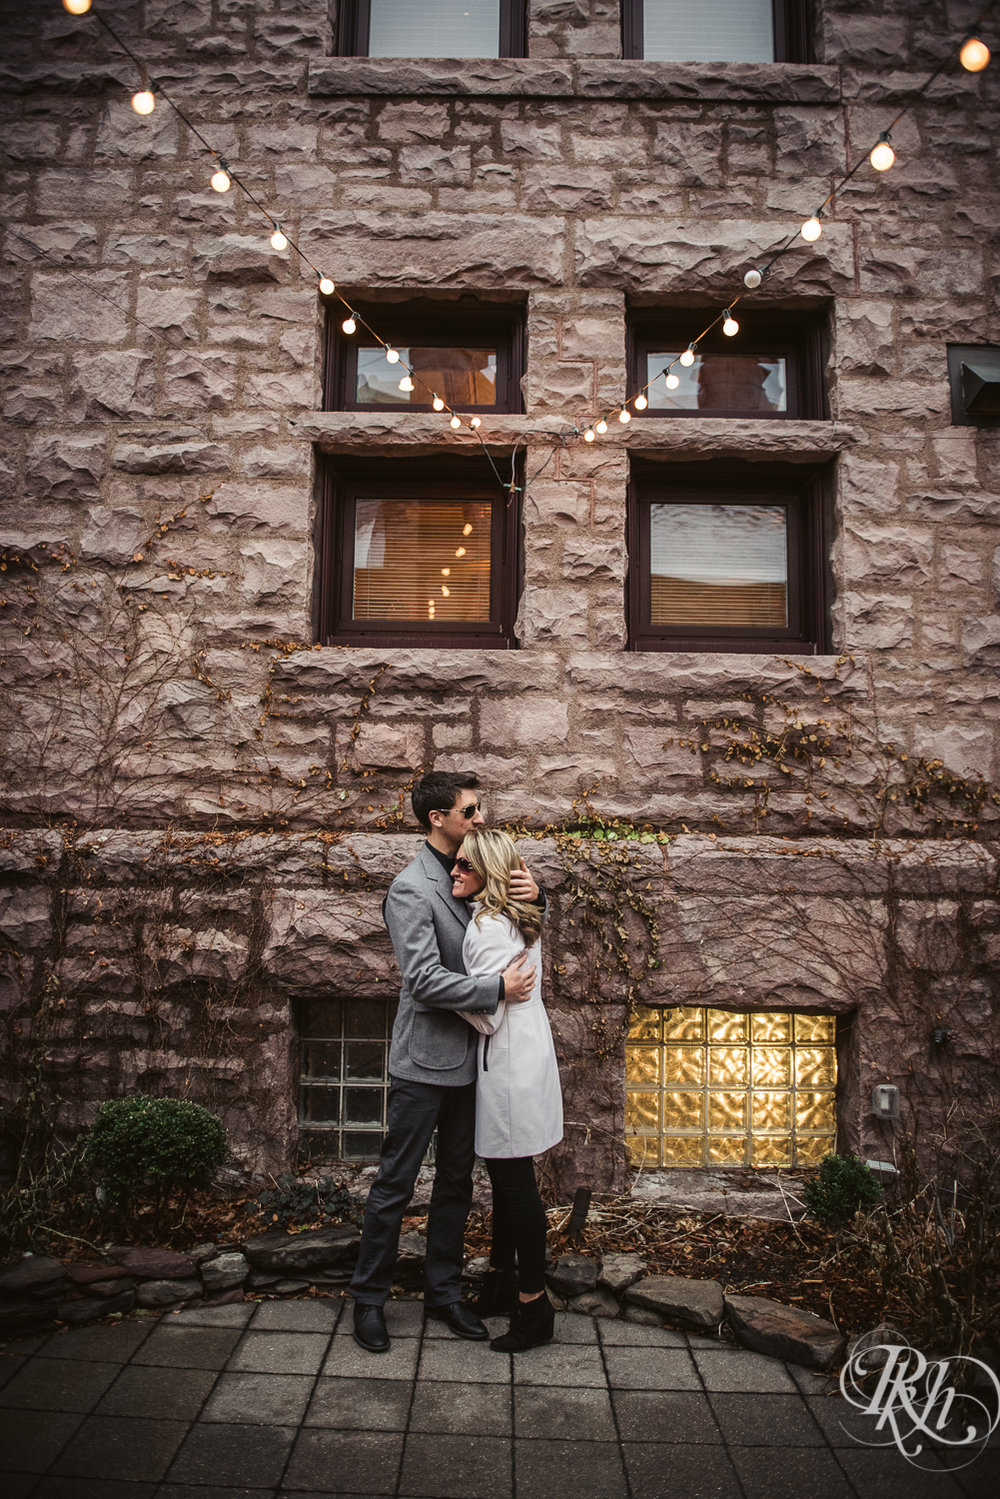 Megan & Jeff - Minnesota Engagement Photography - Van Dusen Mansion - RKH Images -9.jpg